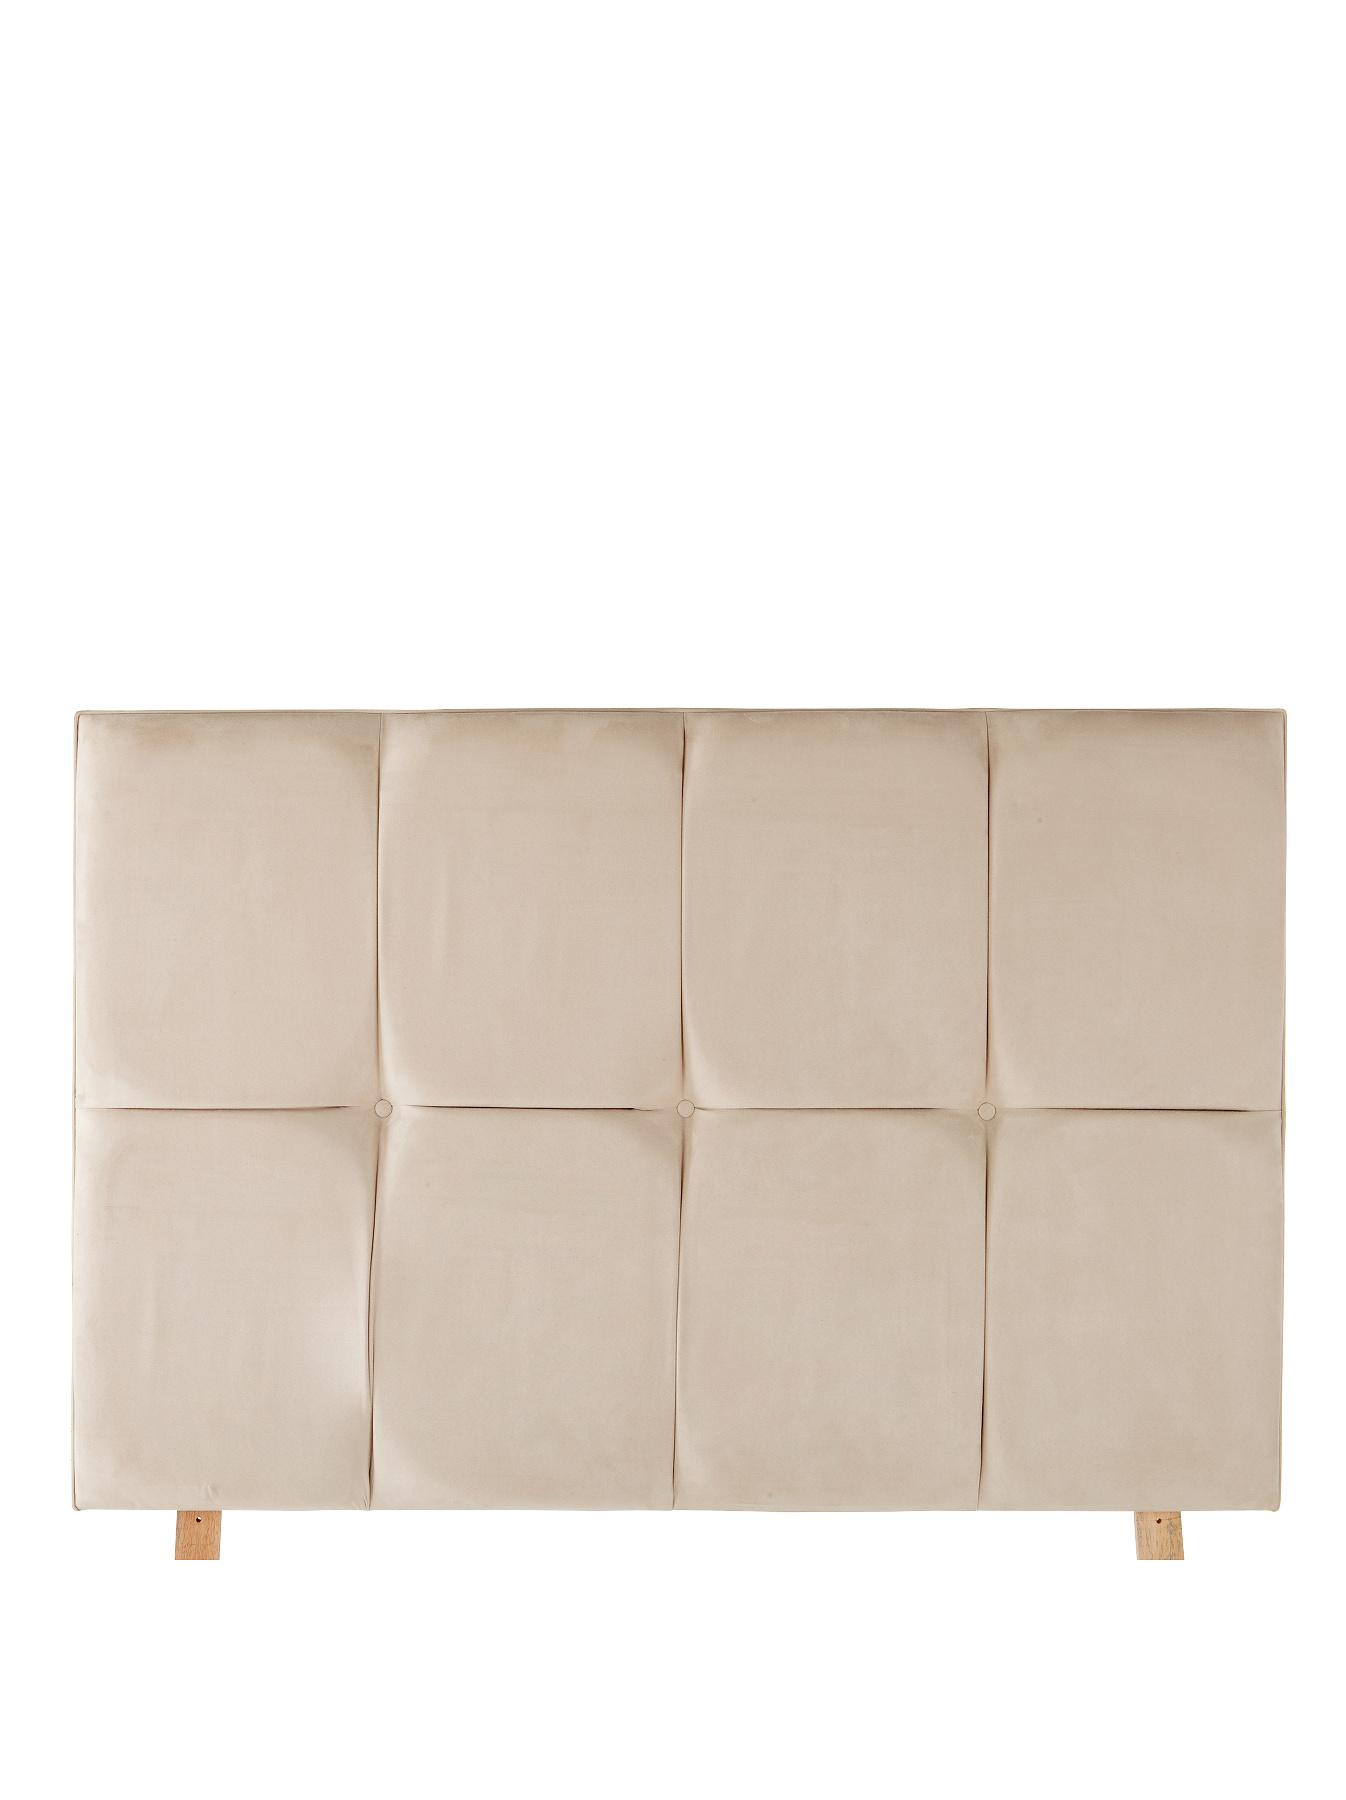 Estella Headboard - Plum, Plum,Grey